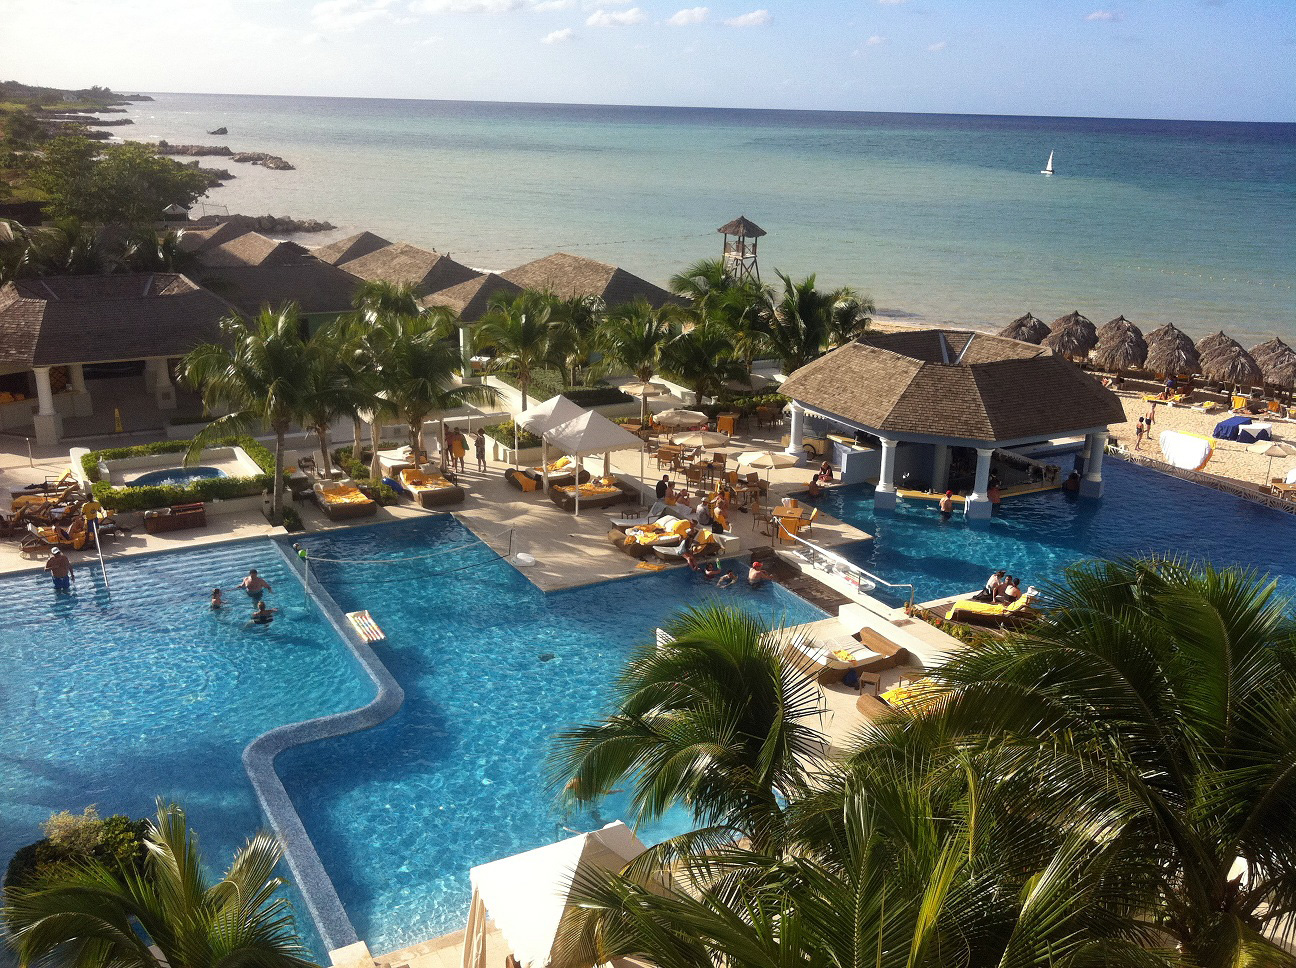 Iberostar Grand Hotel in Montego Bay, Jamaica